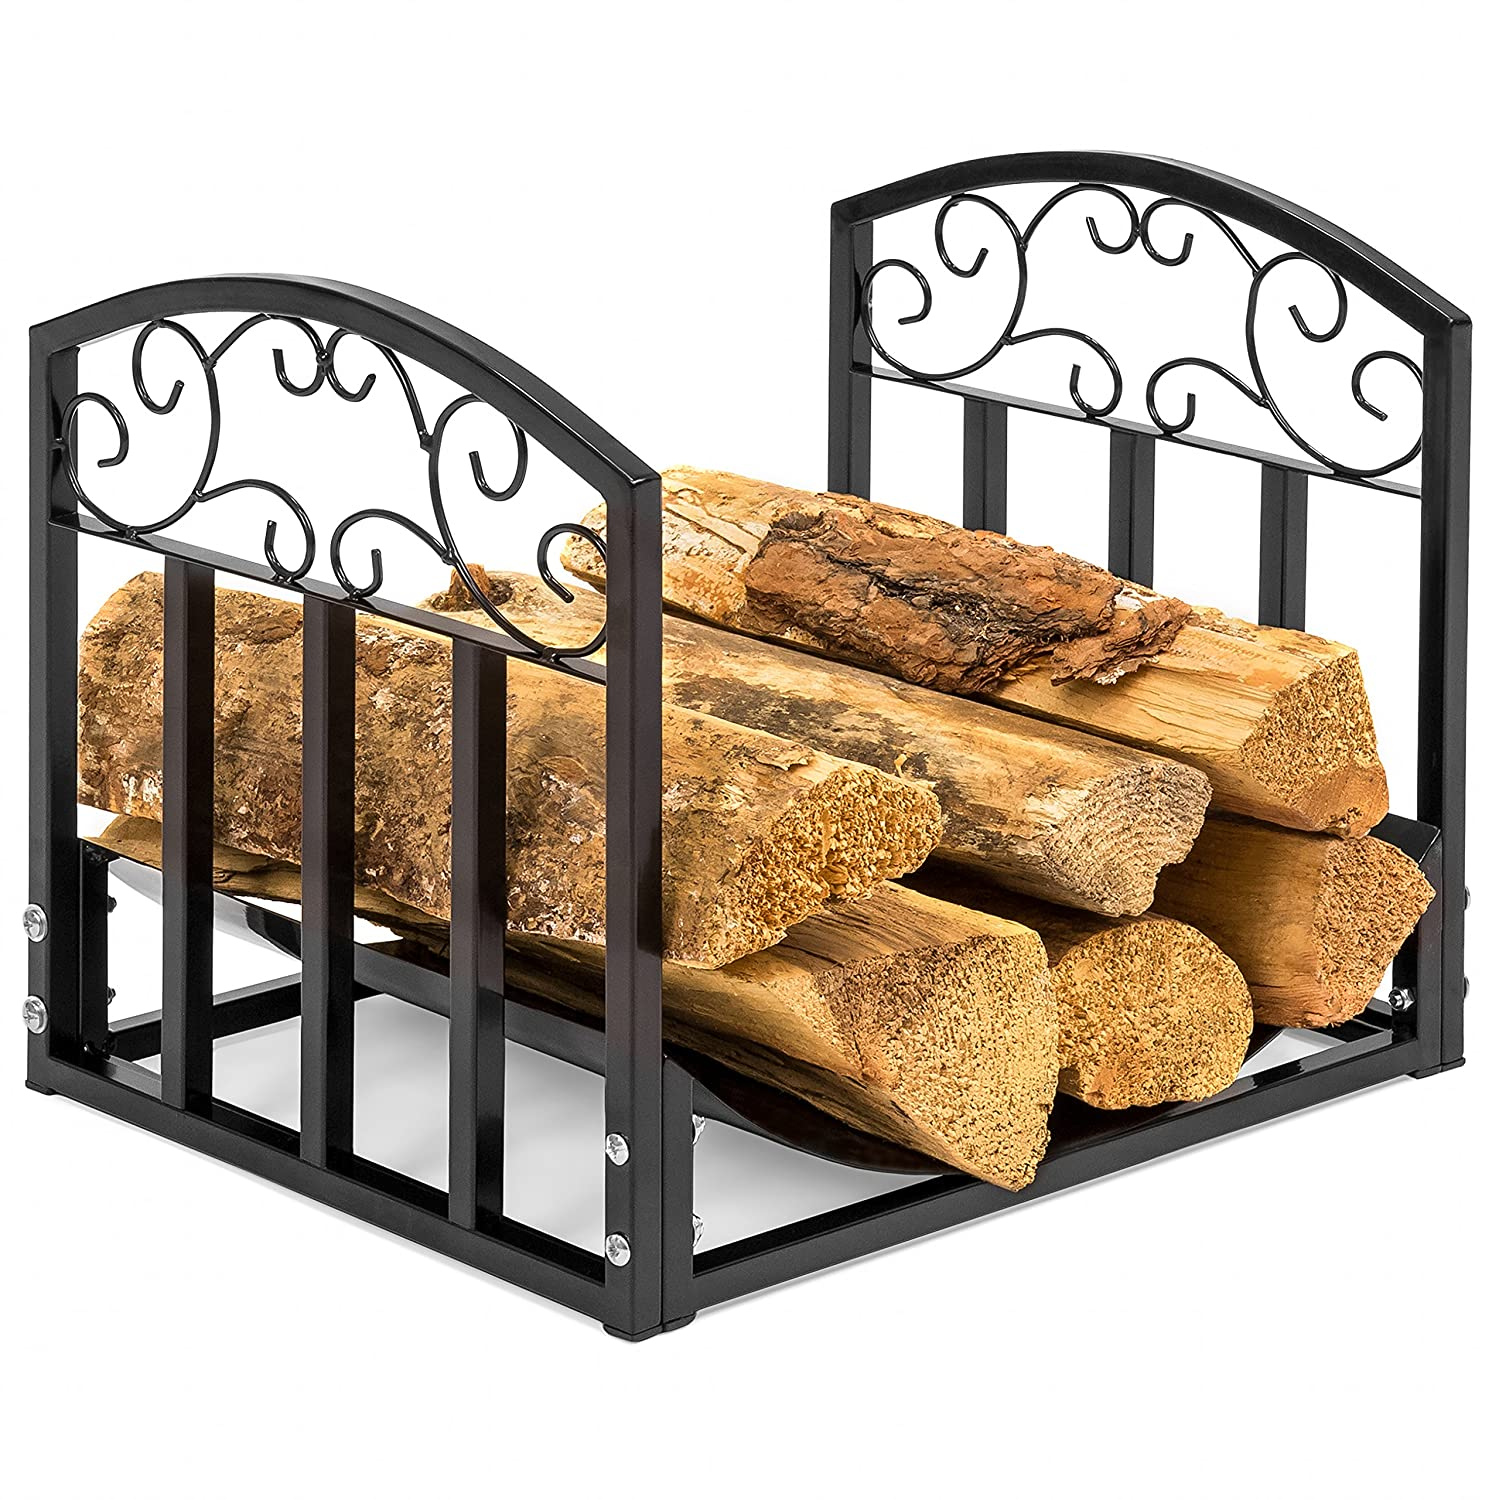 Best Choice Products Indoor Wrought Iron Firewood Fireplace Log Rack Holder Hearth Storage Tray w Scroll Design